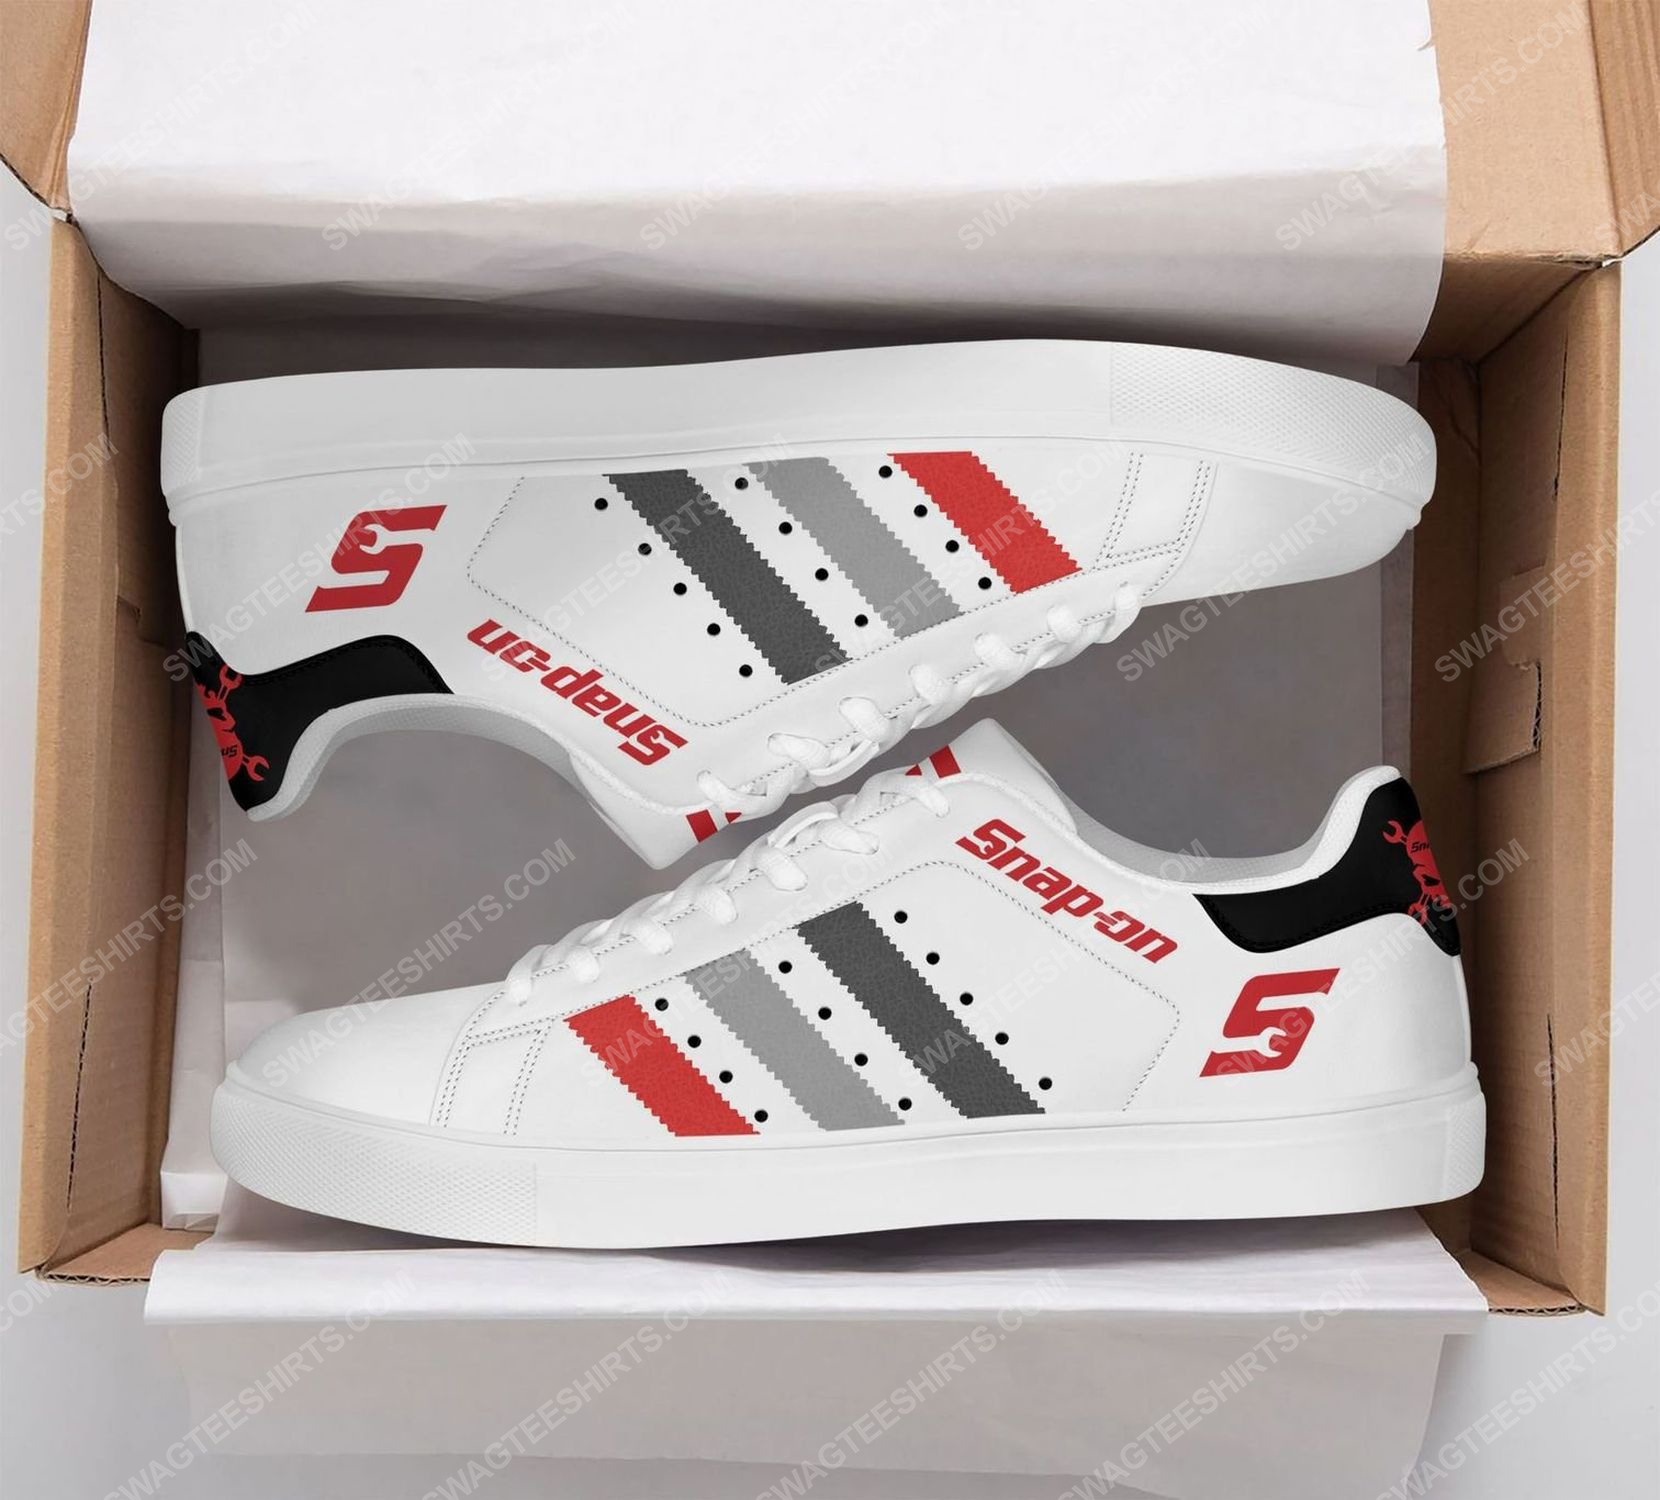 The snap-on version white stan smith shoes